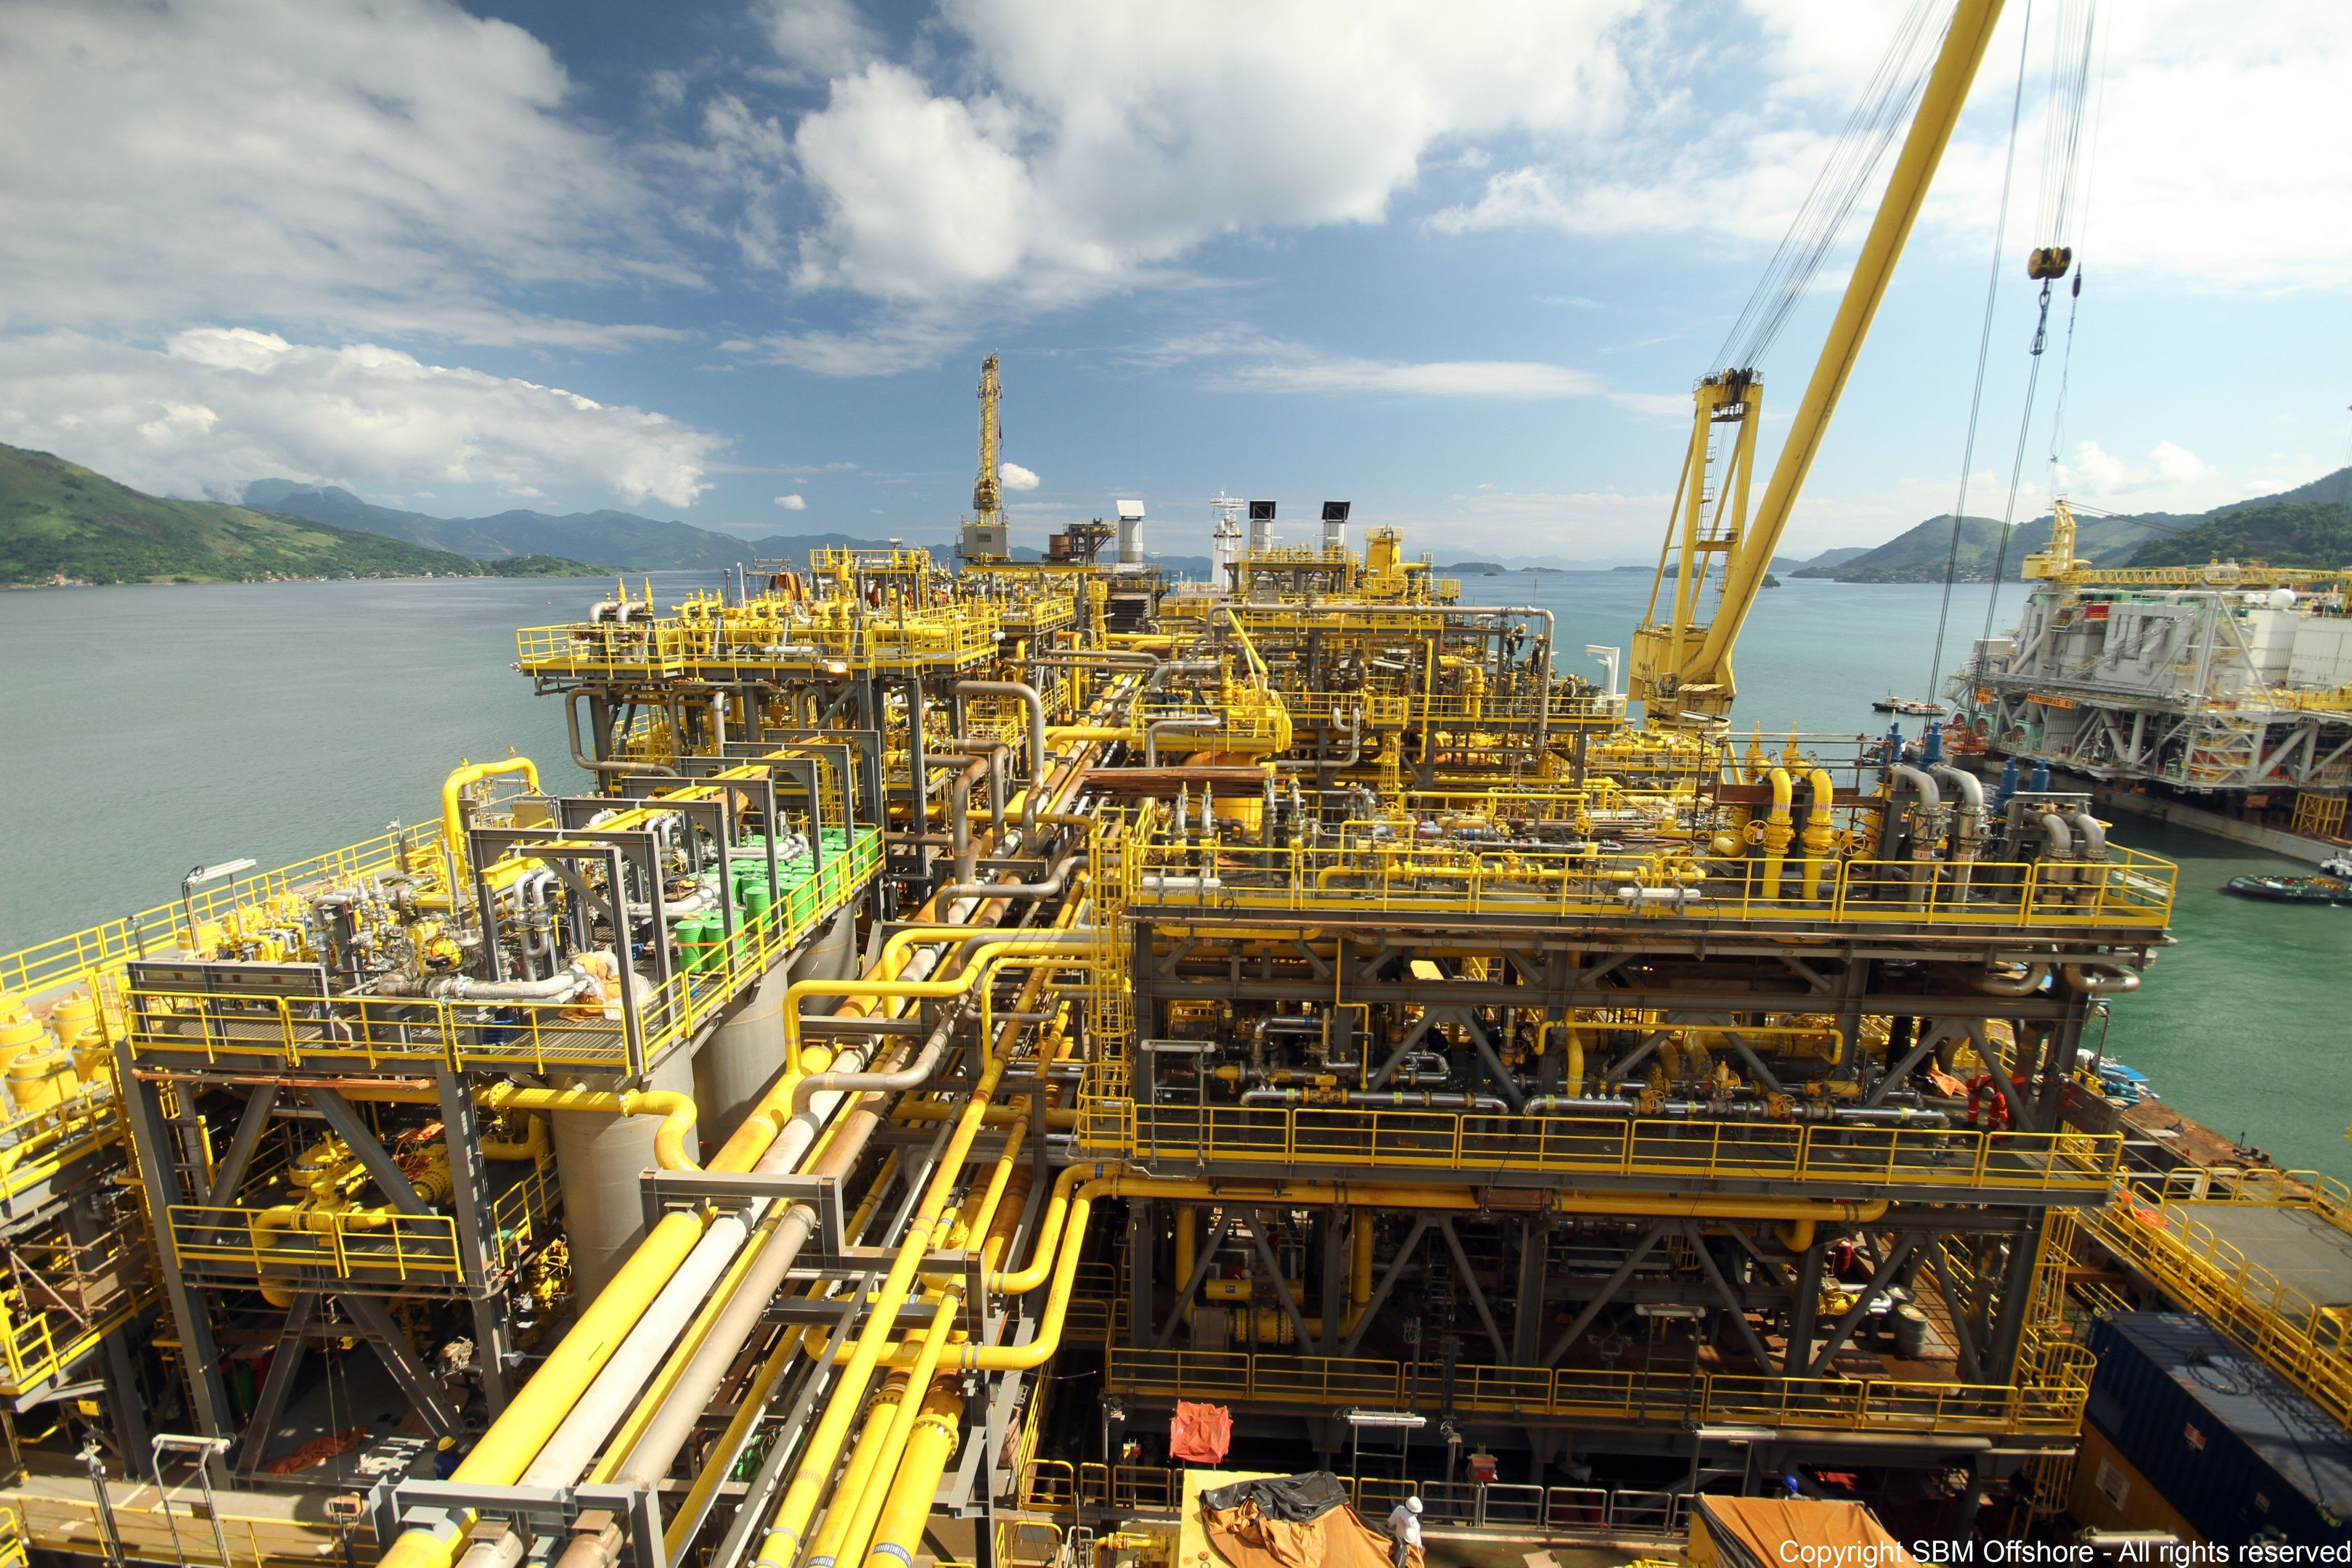 ExxonMobil's Liza field forms part of the 6billion barrel Stabroek block. Pic: An SBM Offshore FPSO